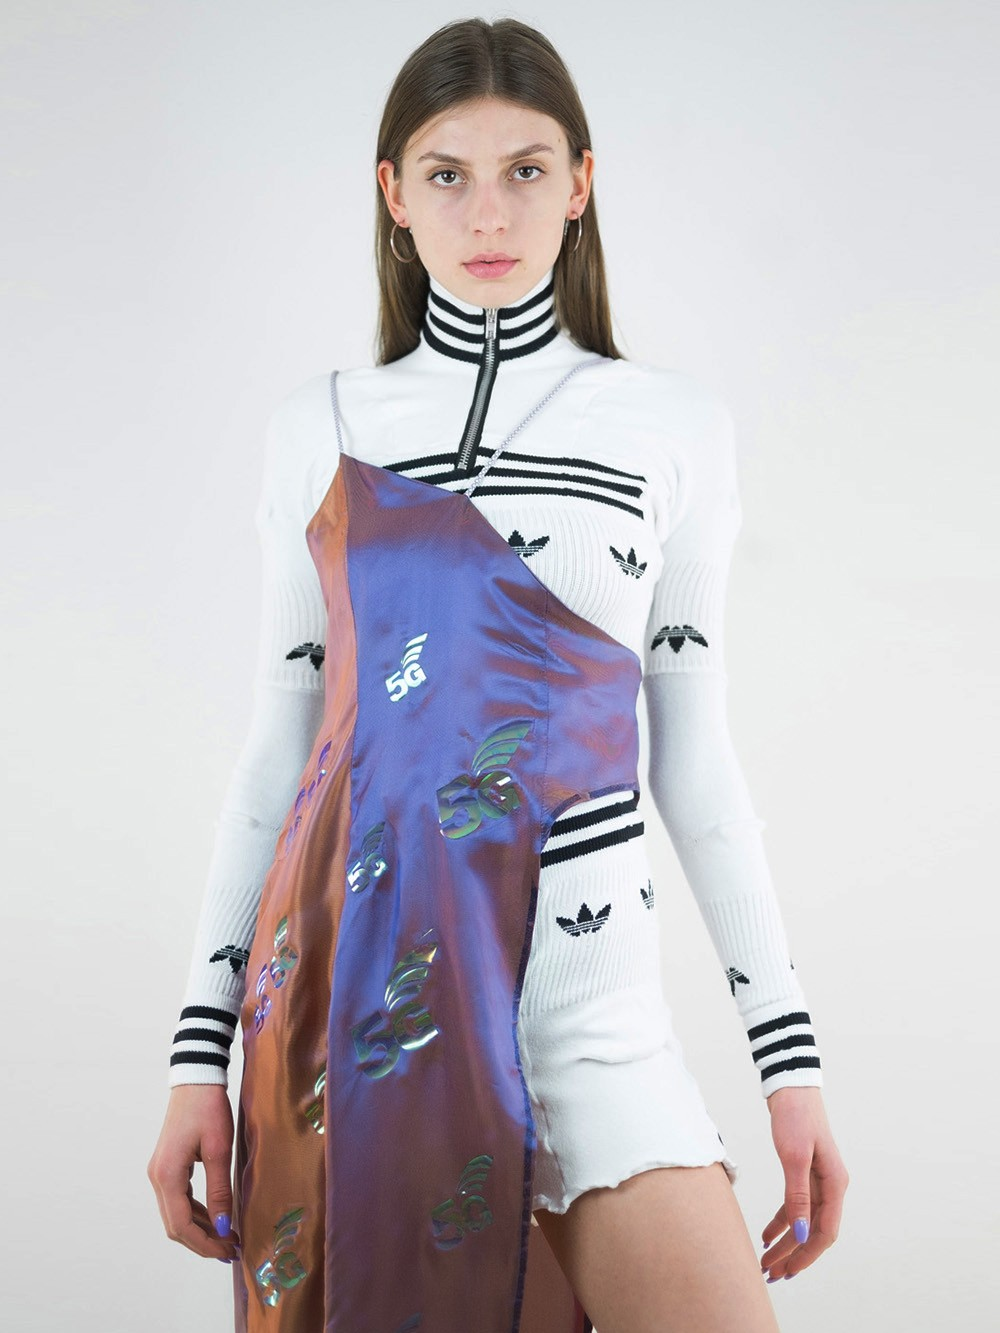 5G Upcycled Adidas Gown 167